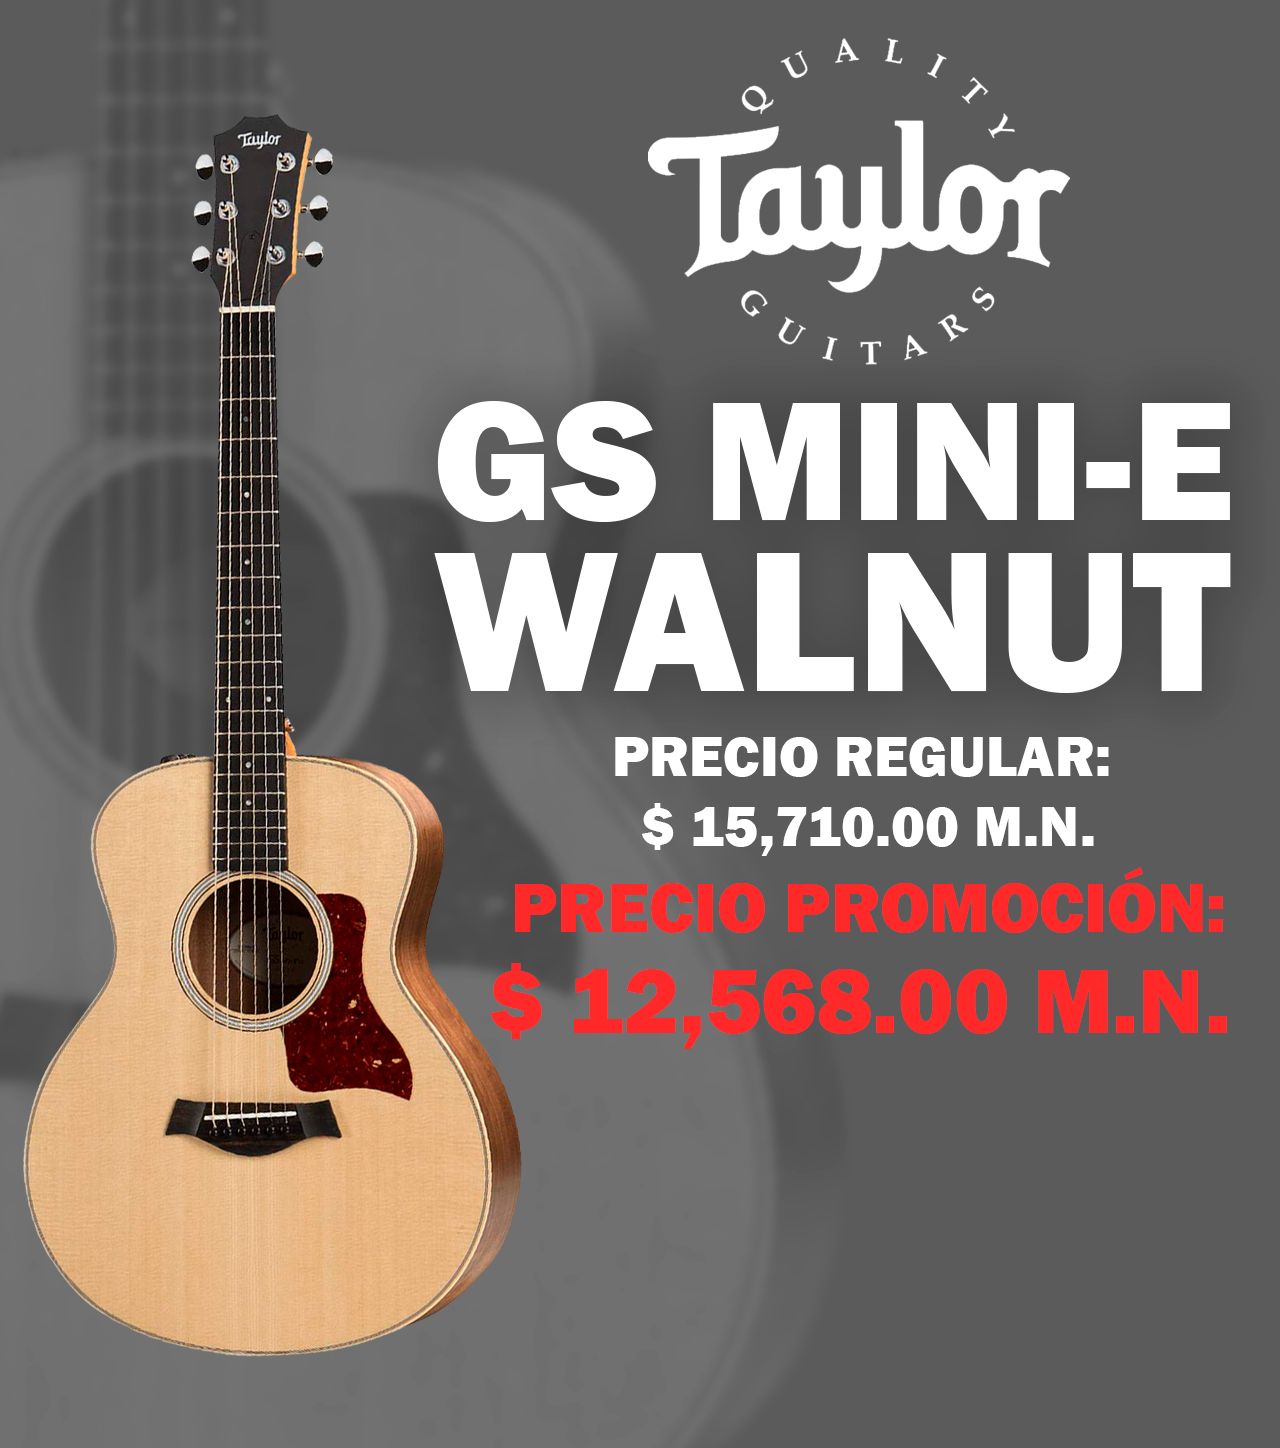 GS MINI-E Walnut Karma Music